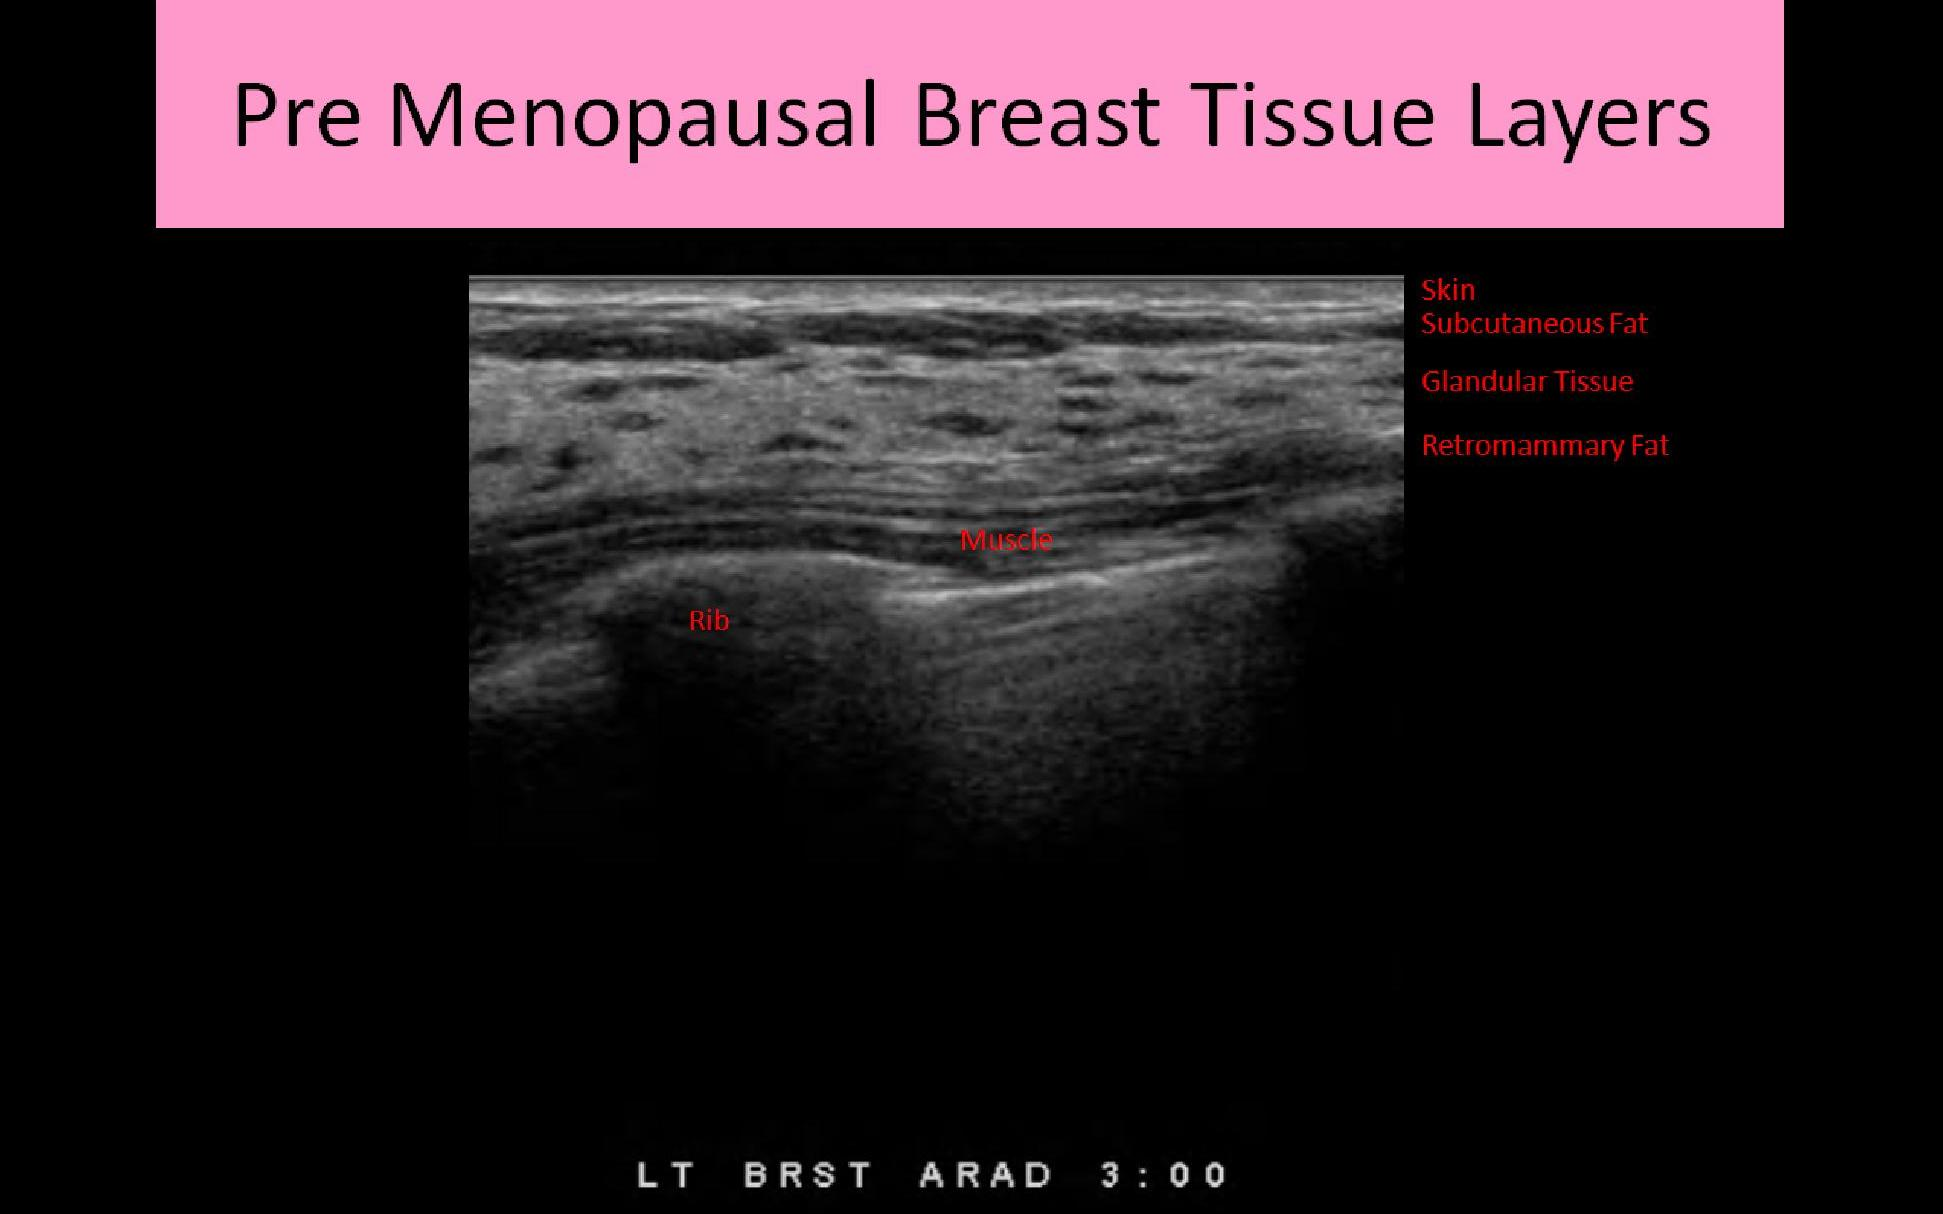 BREAST ANATOMY AND PHYSIOLOGY - Ultrasound Registry Review